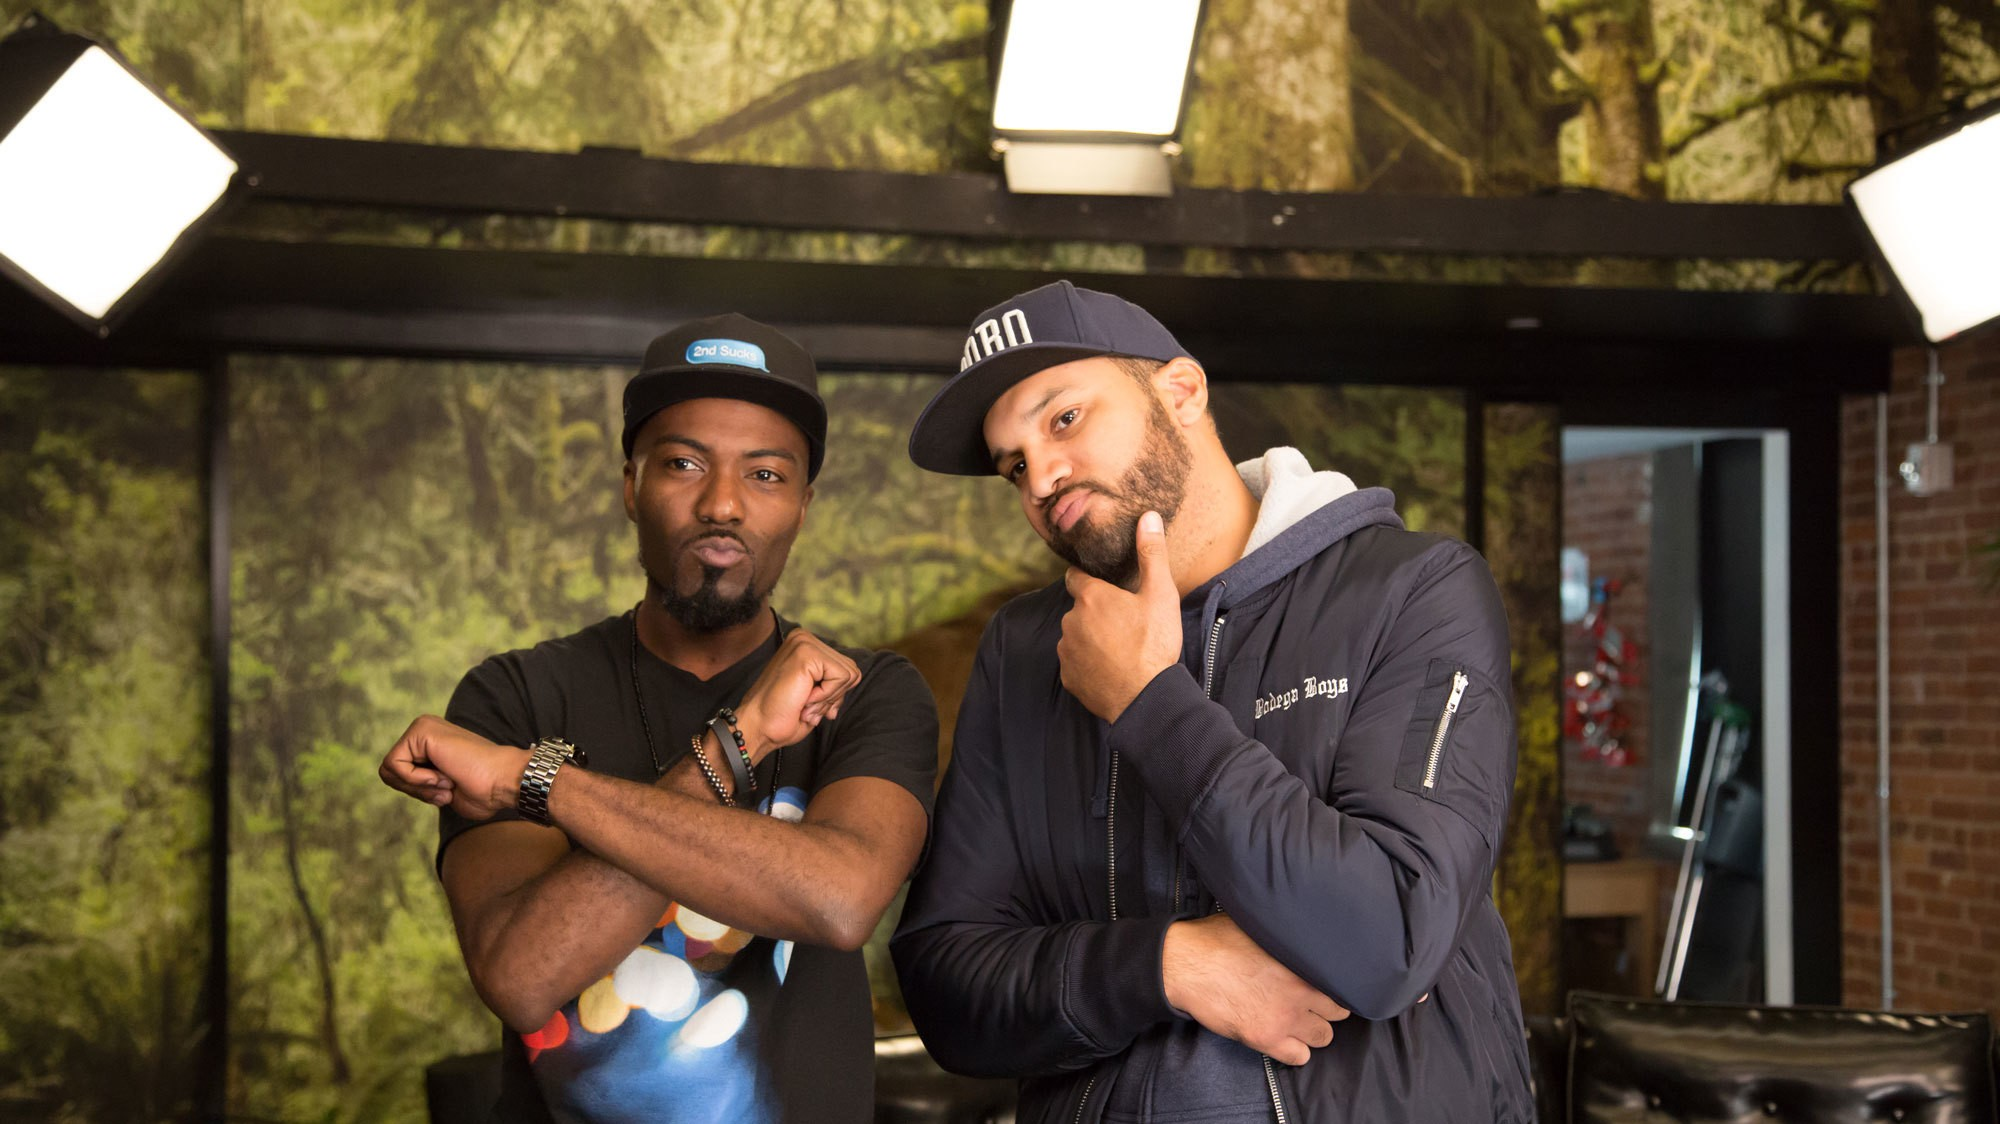 Desus and Mero on the Knicks, LeBron's Trolling, and More: COOKIES 31